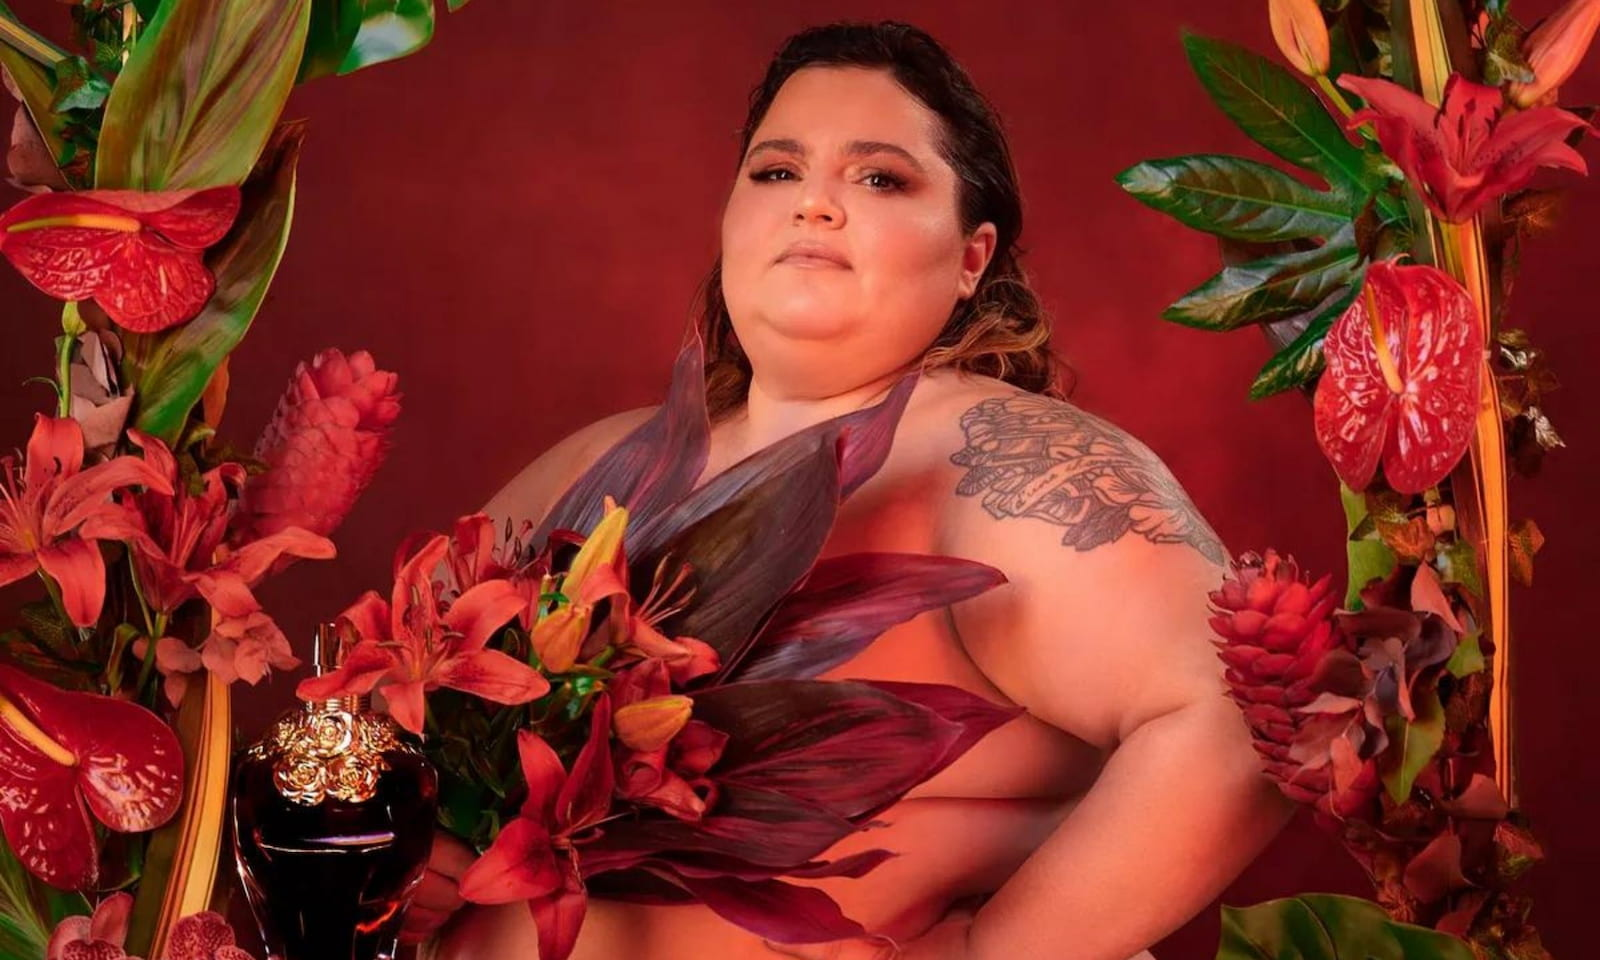 Barbara Butch, The Lesbian DJ and Fat Activist Who Will Make You Dance